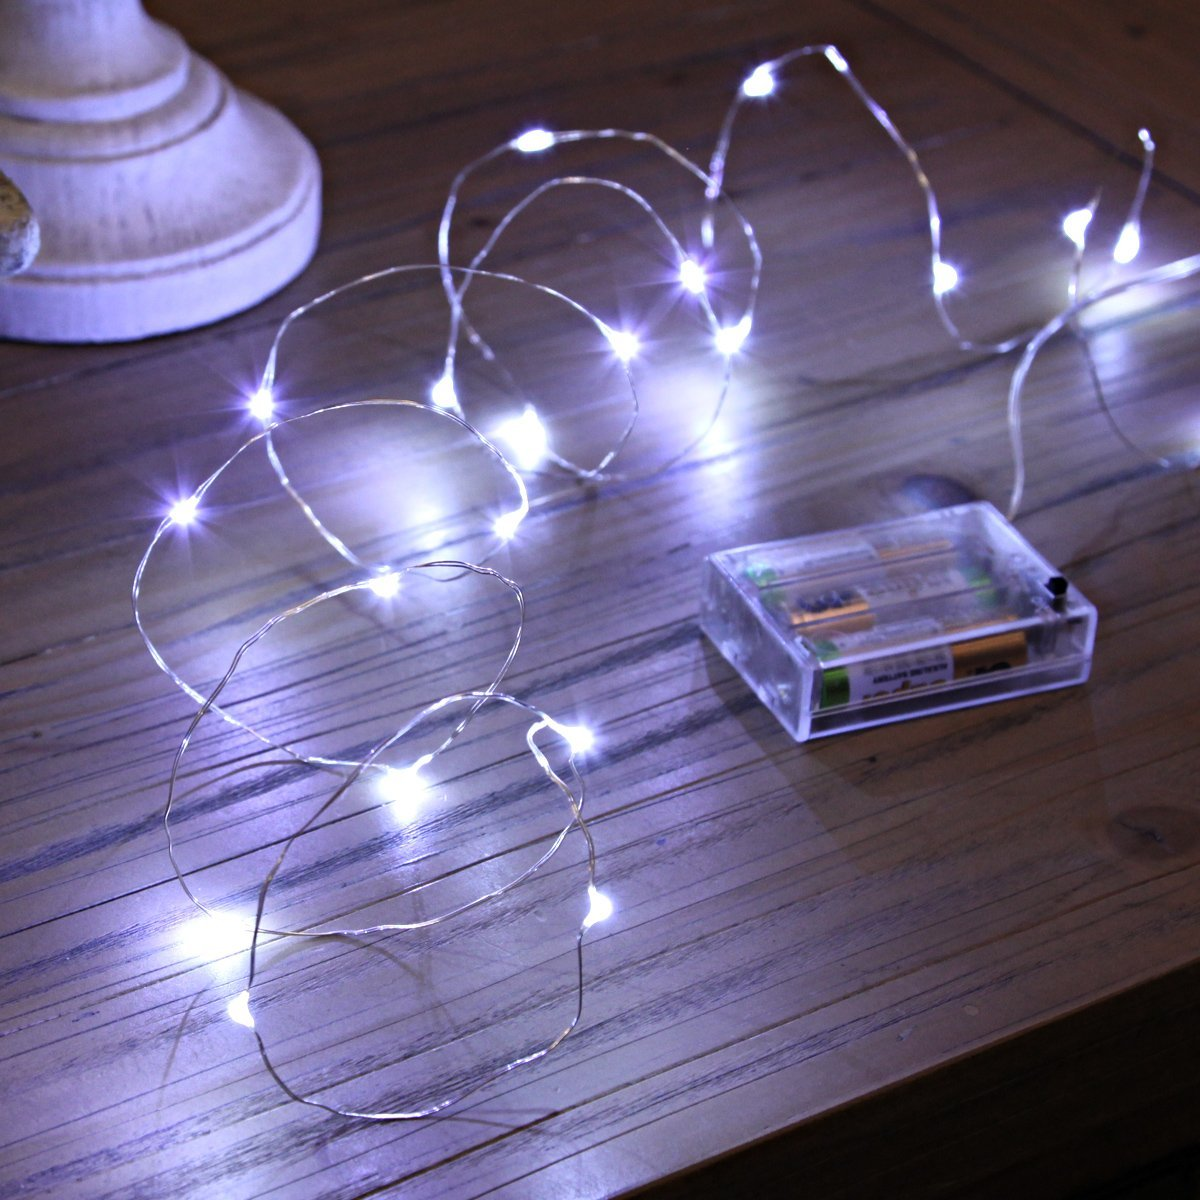 20 micro led battery operated fairy lights silver wire. Black Bedroom Furniture Sets. Home Design Ideas